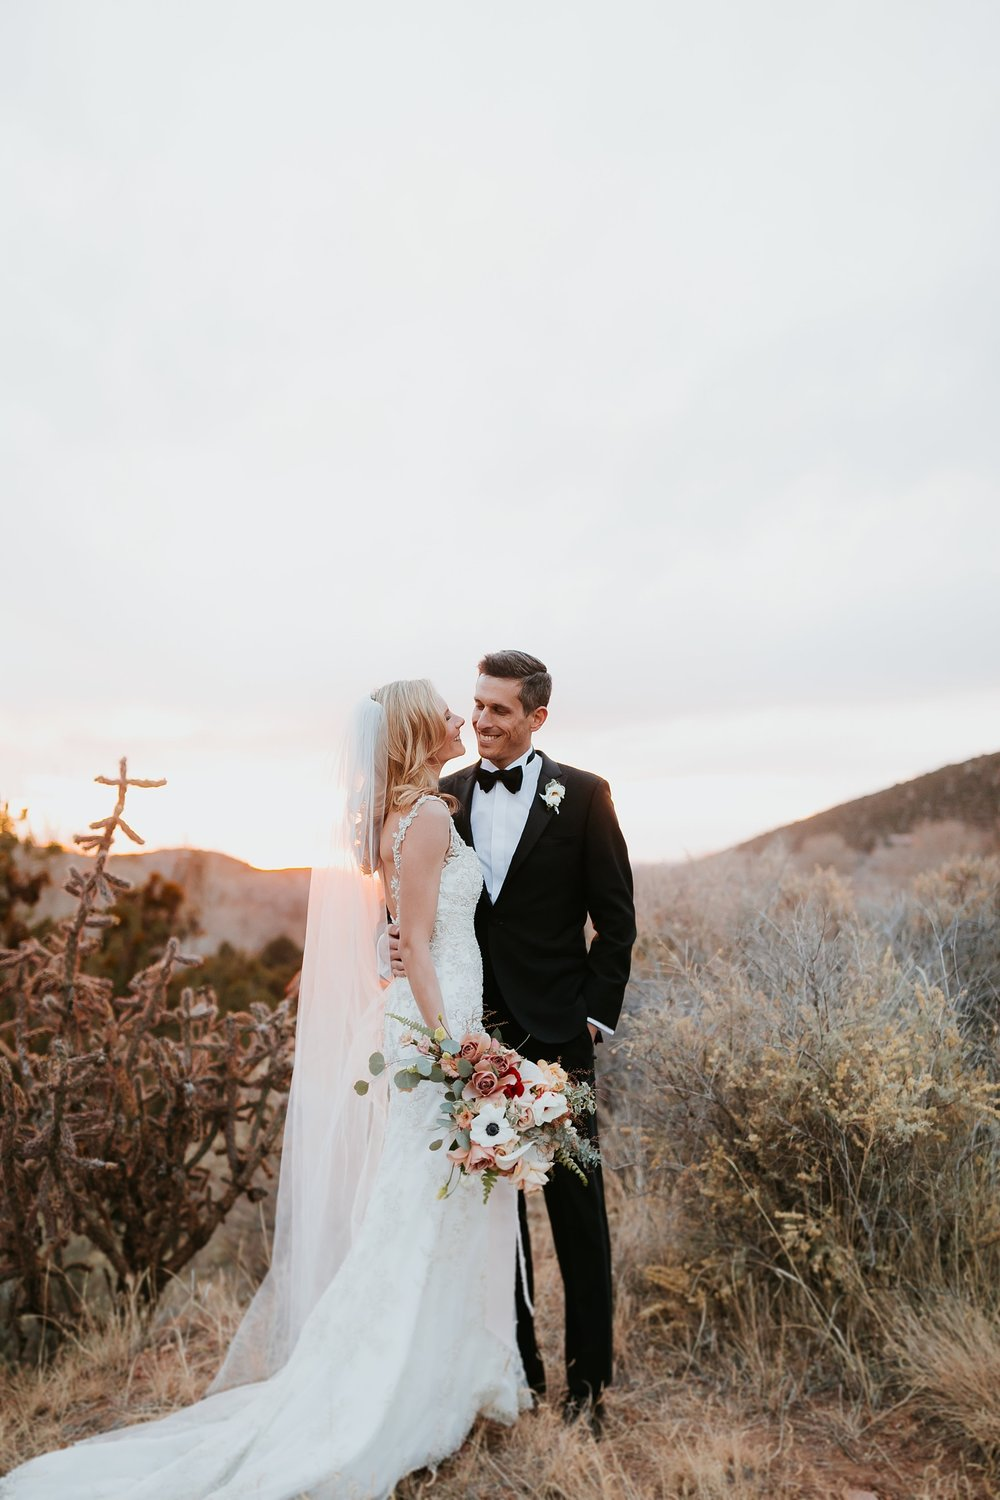 Alicia+lucia+photography+-+albuquerque+wedding+photographer+-+santa+fe+wedding+photography+-+new+mexico+wedding+photographer+-+la+fonda+wedding+-+la+fonda+winter+wedding_0115.jpg